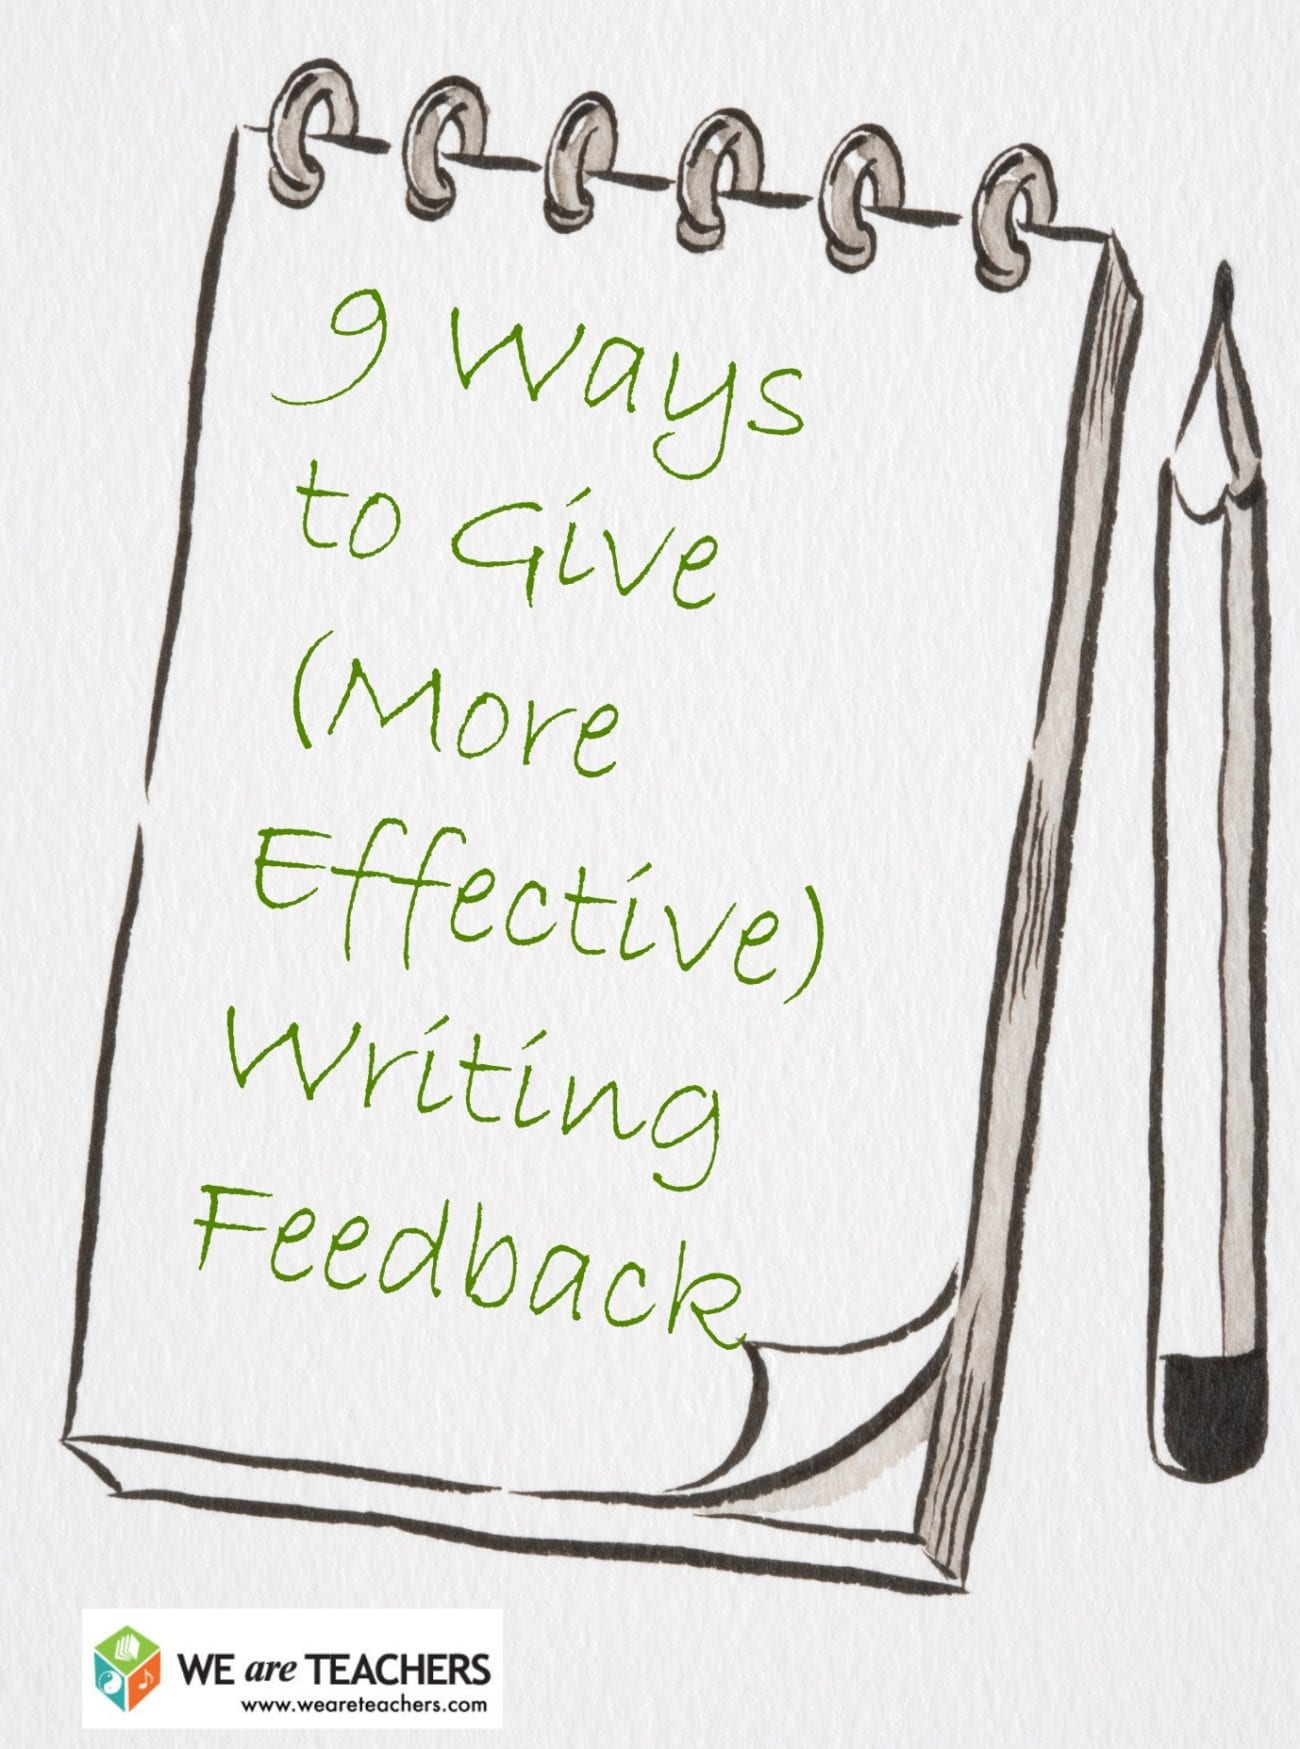 9 Ways to Give (More Effective) Writing Feedback